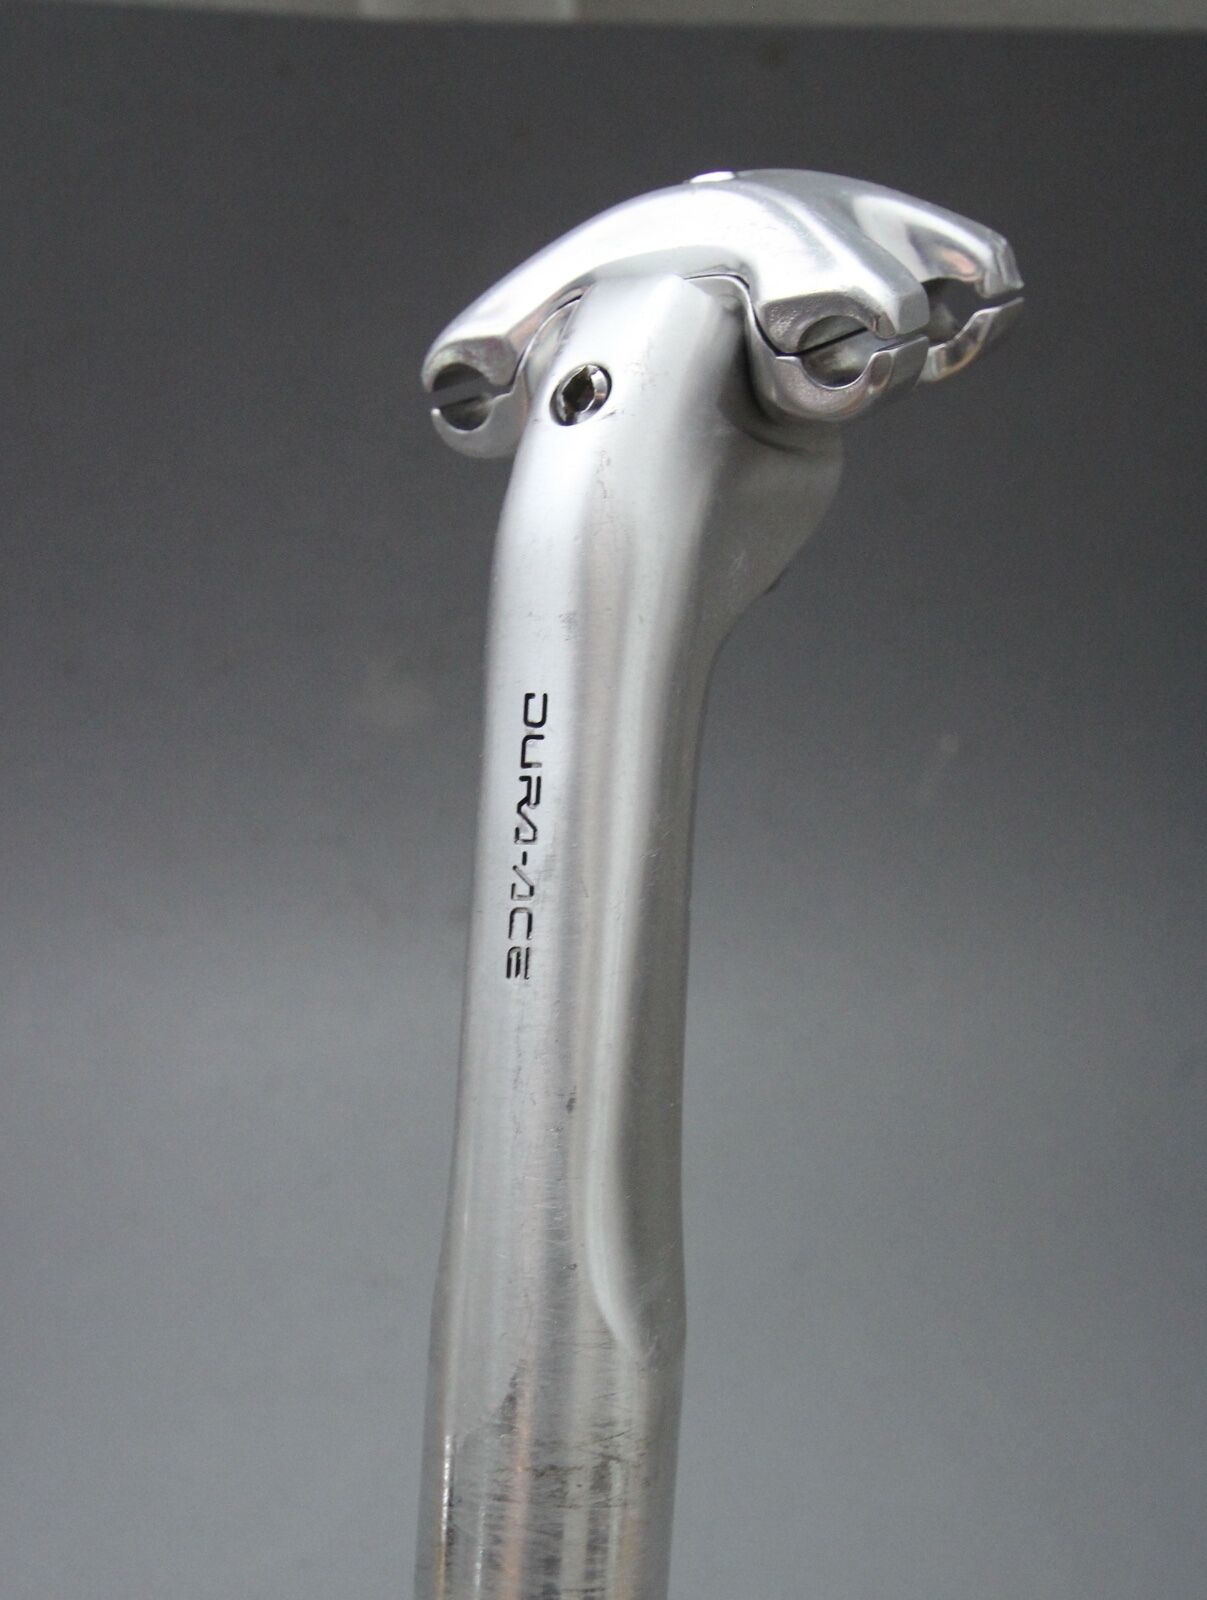 Shimano Dura Ace  SP-7400 B Aero seat post   ø 26,6 mm   247 gr   Sattelstütze  all products get up to 34% off